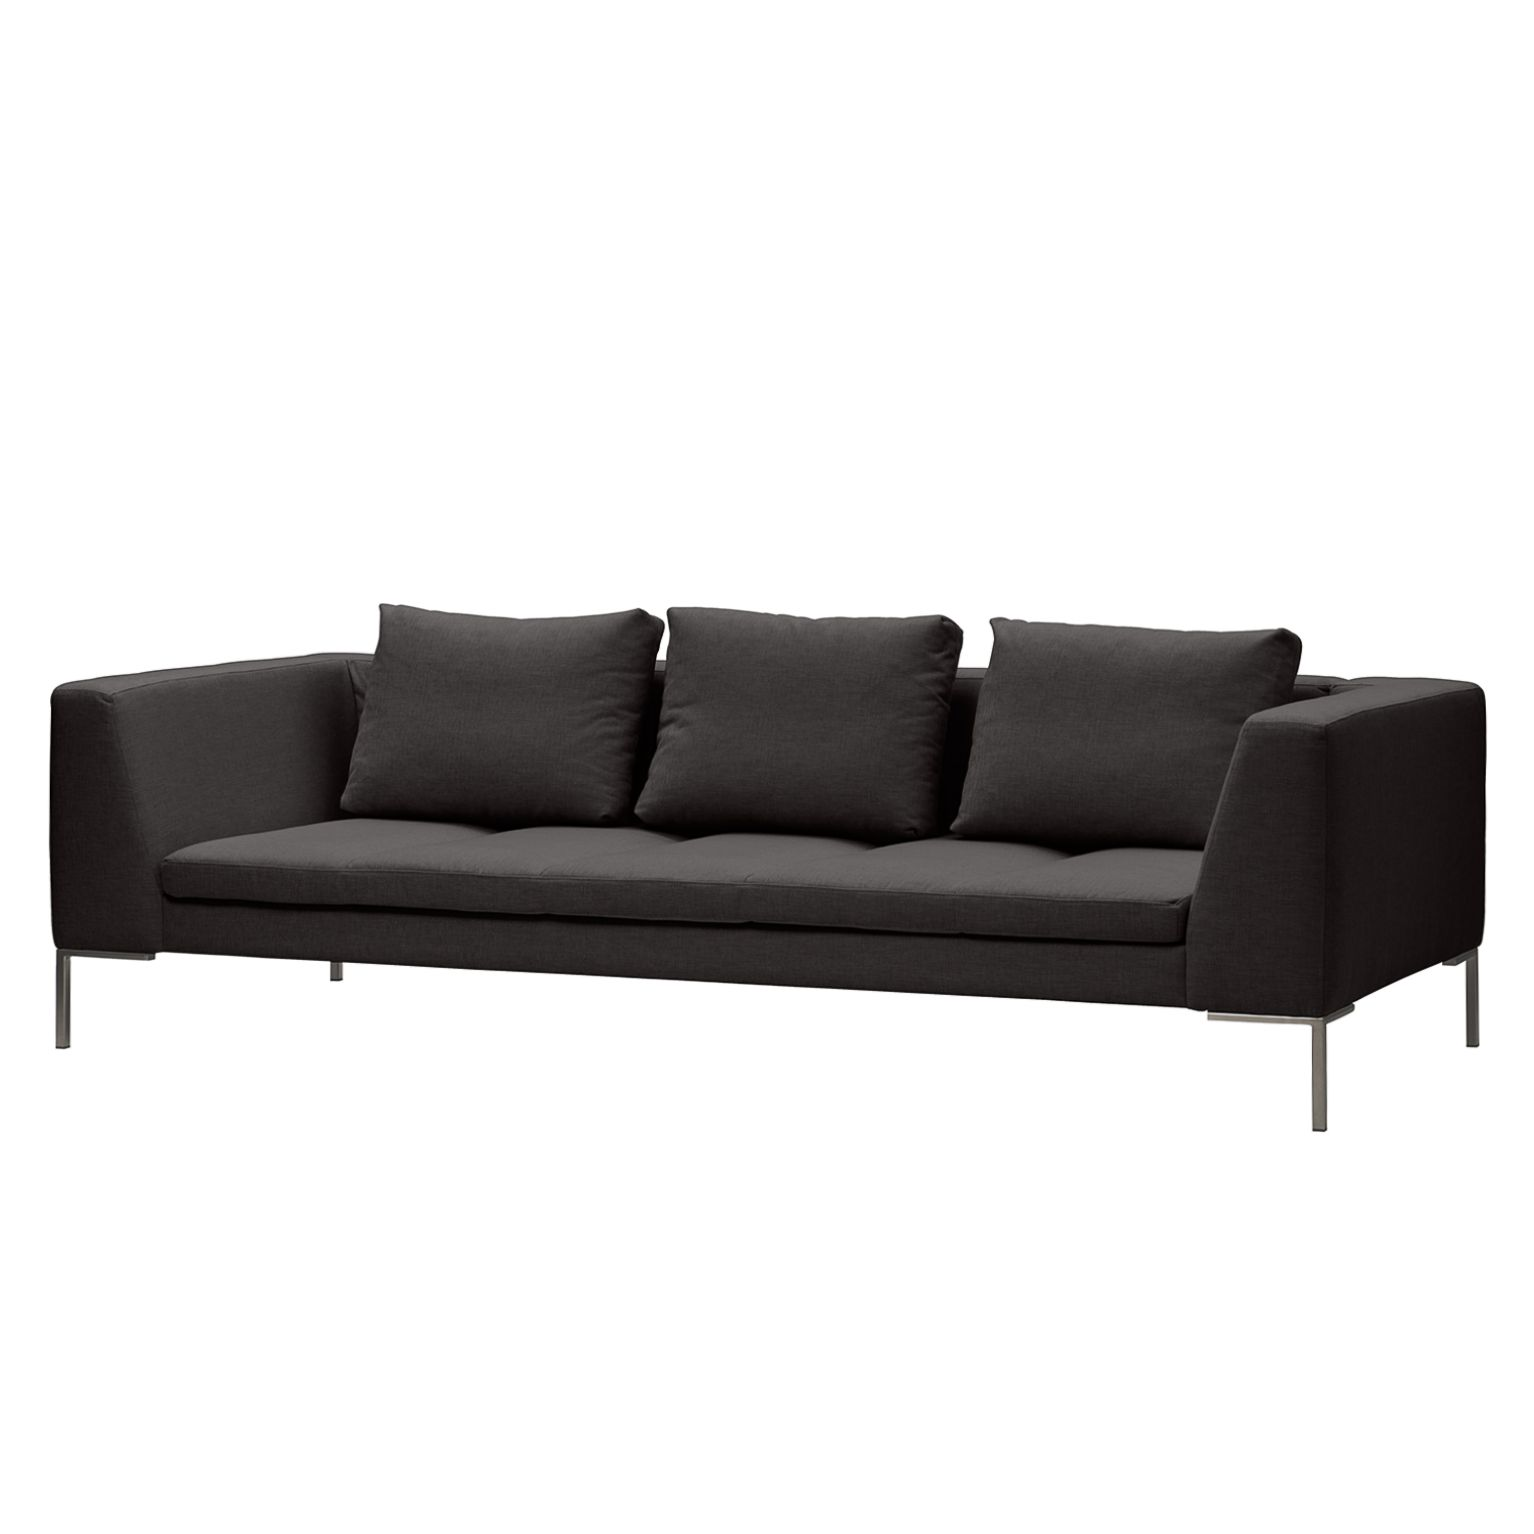 Sofa Madison (3-Sitzer) Webstoff - Stoff Anda II Anthrazit